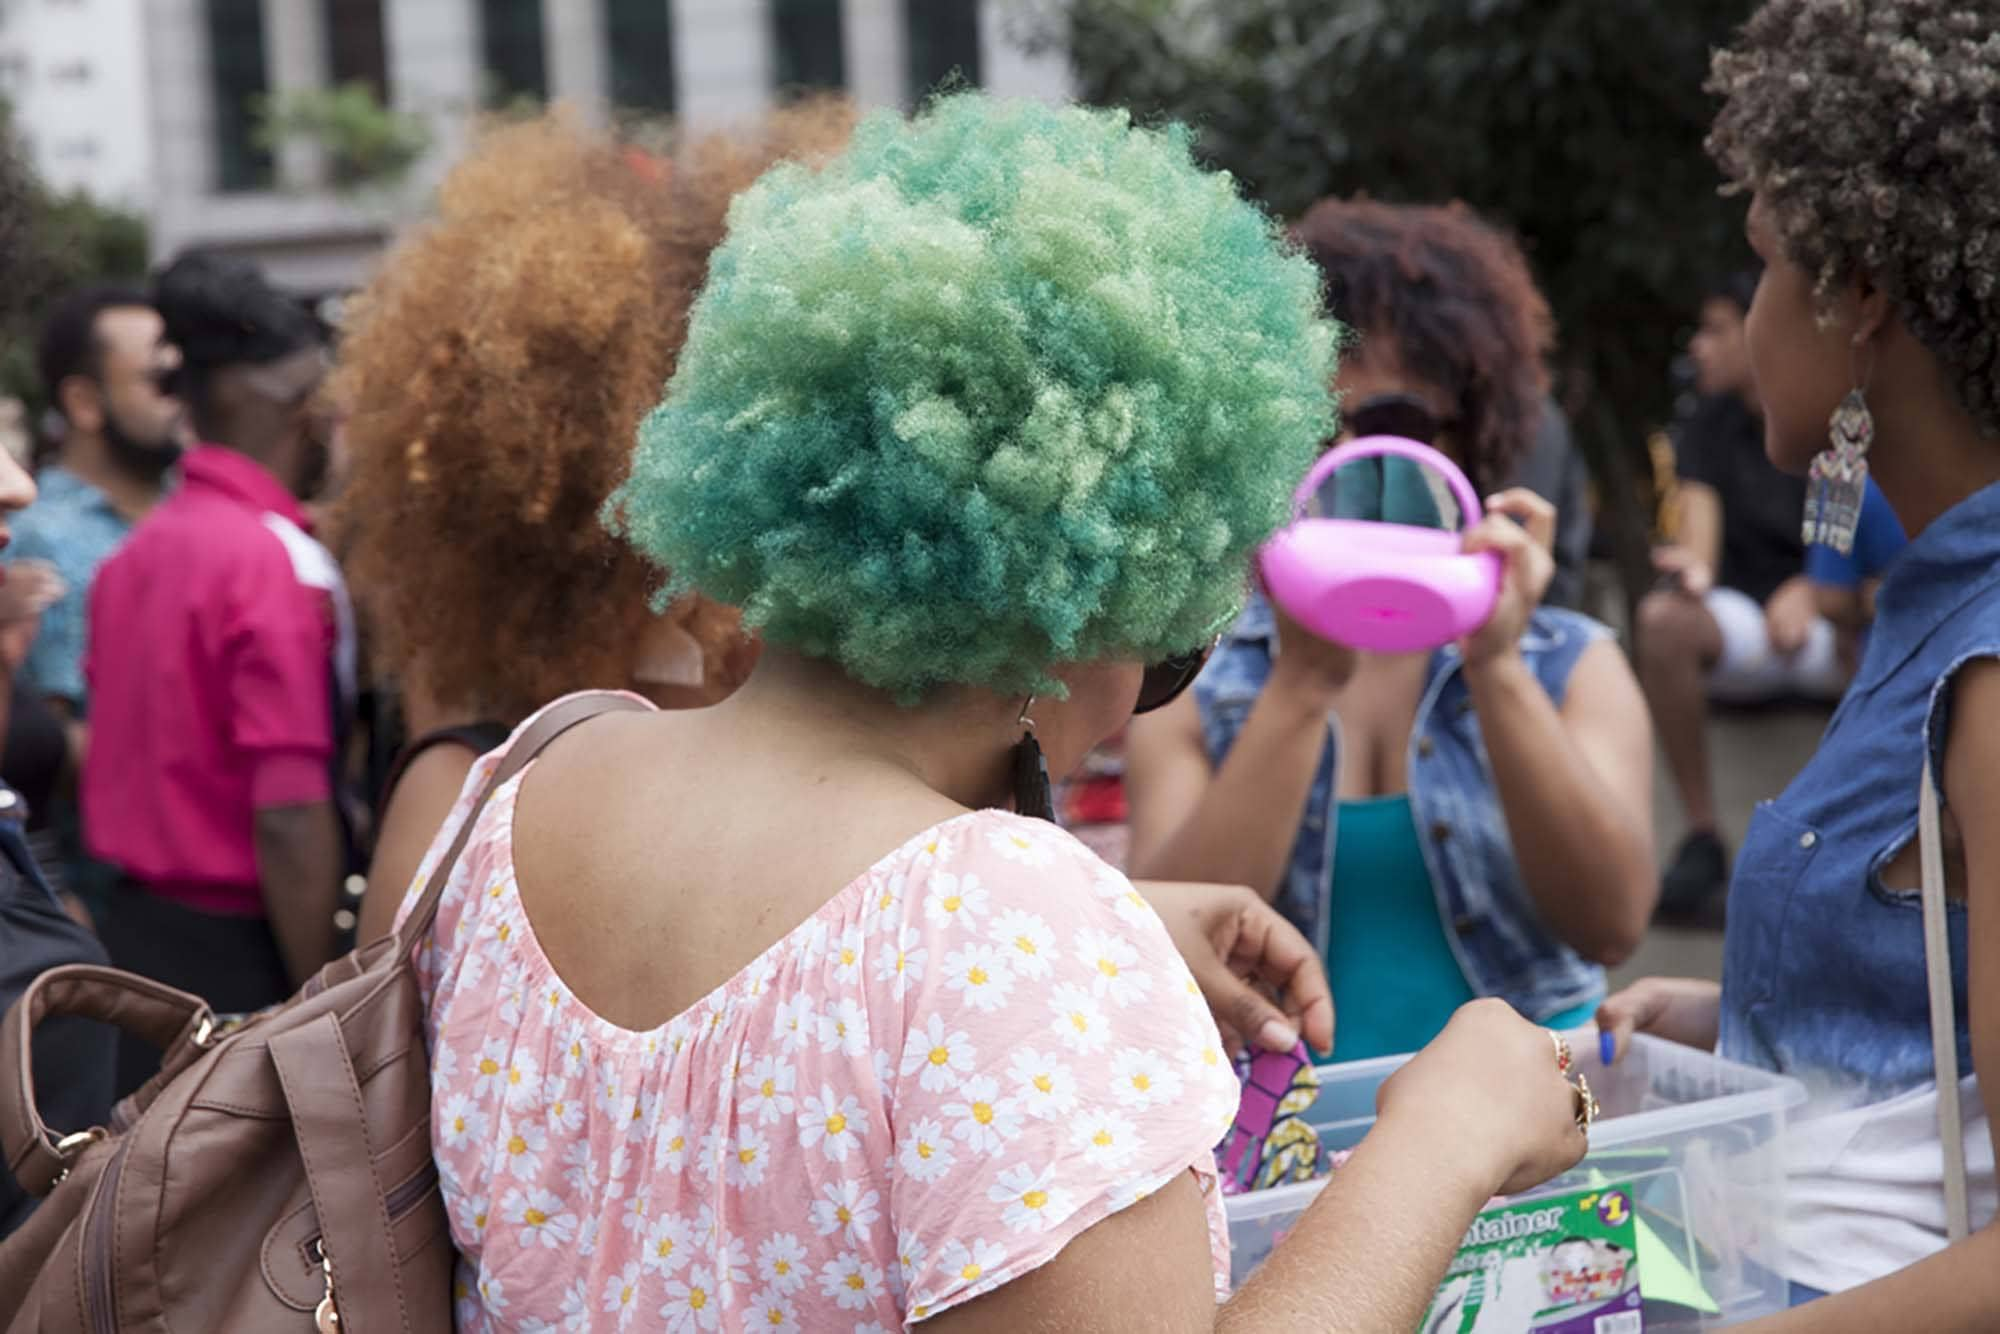 Coloured afro hair styles: punk sea foam green afro